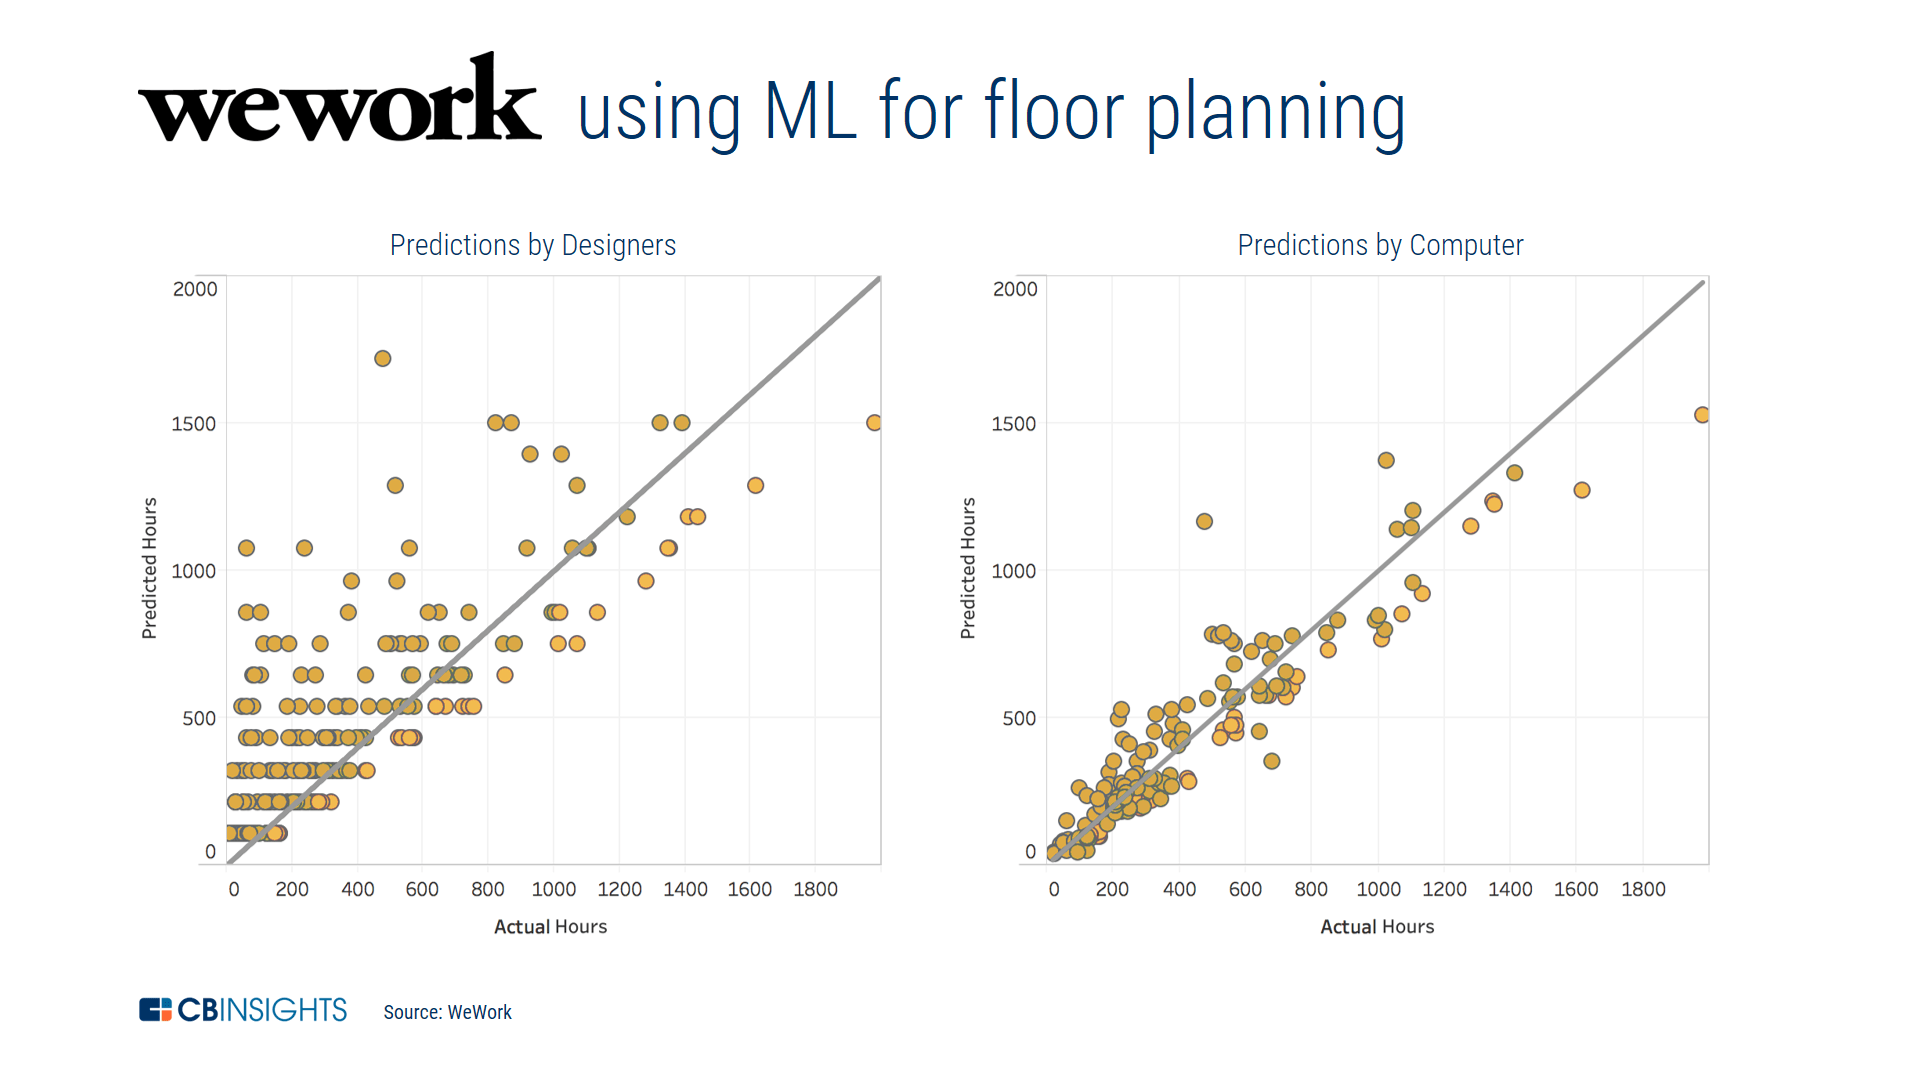 Data Floor Plans Floor Plans Floor Plan Graphic Pricing Plans Design According To Nicole Phelan, The Design Researcher Who Wrote Weworku0027s Blog  Post On Its Neural Net, U201cthe Most Powerful Implication Of This Study Is  That ...